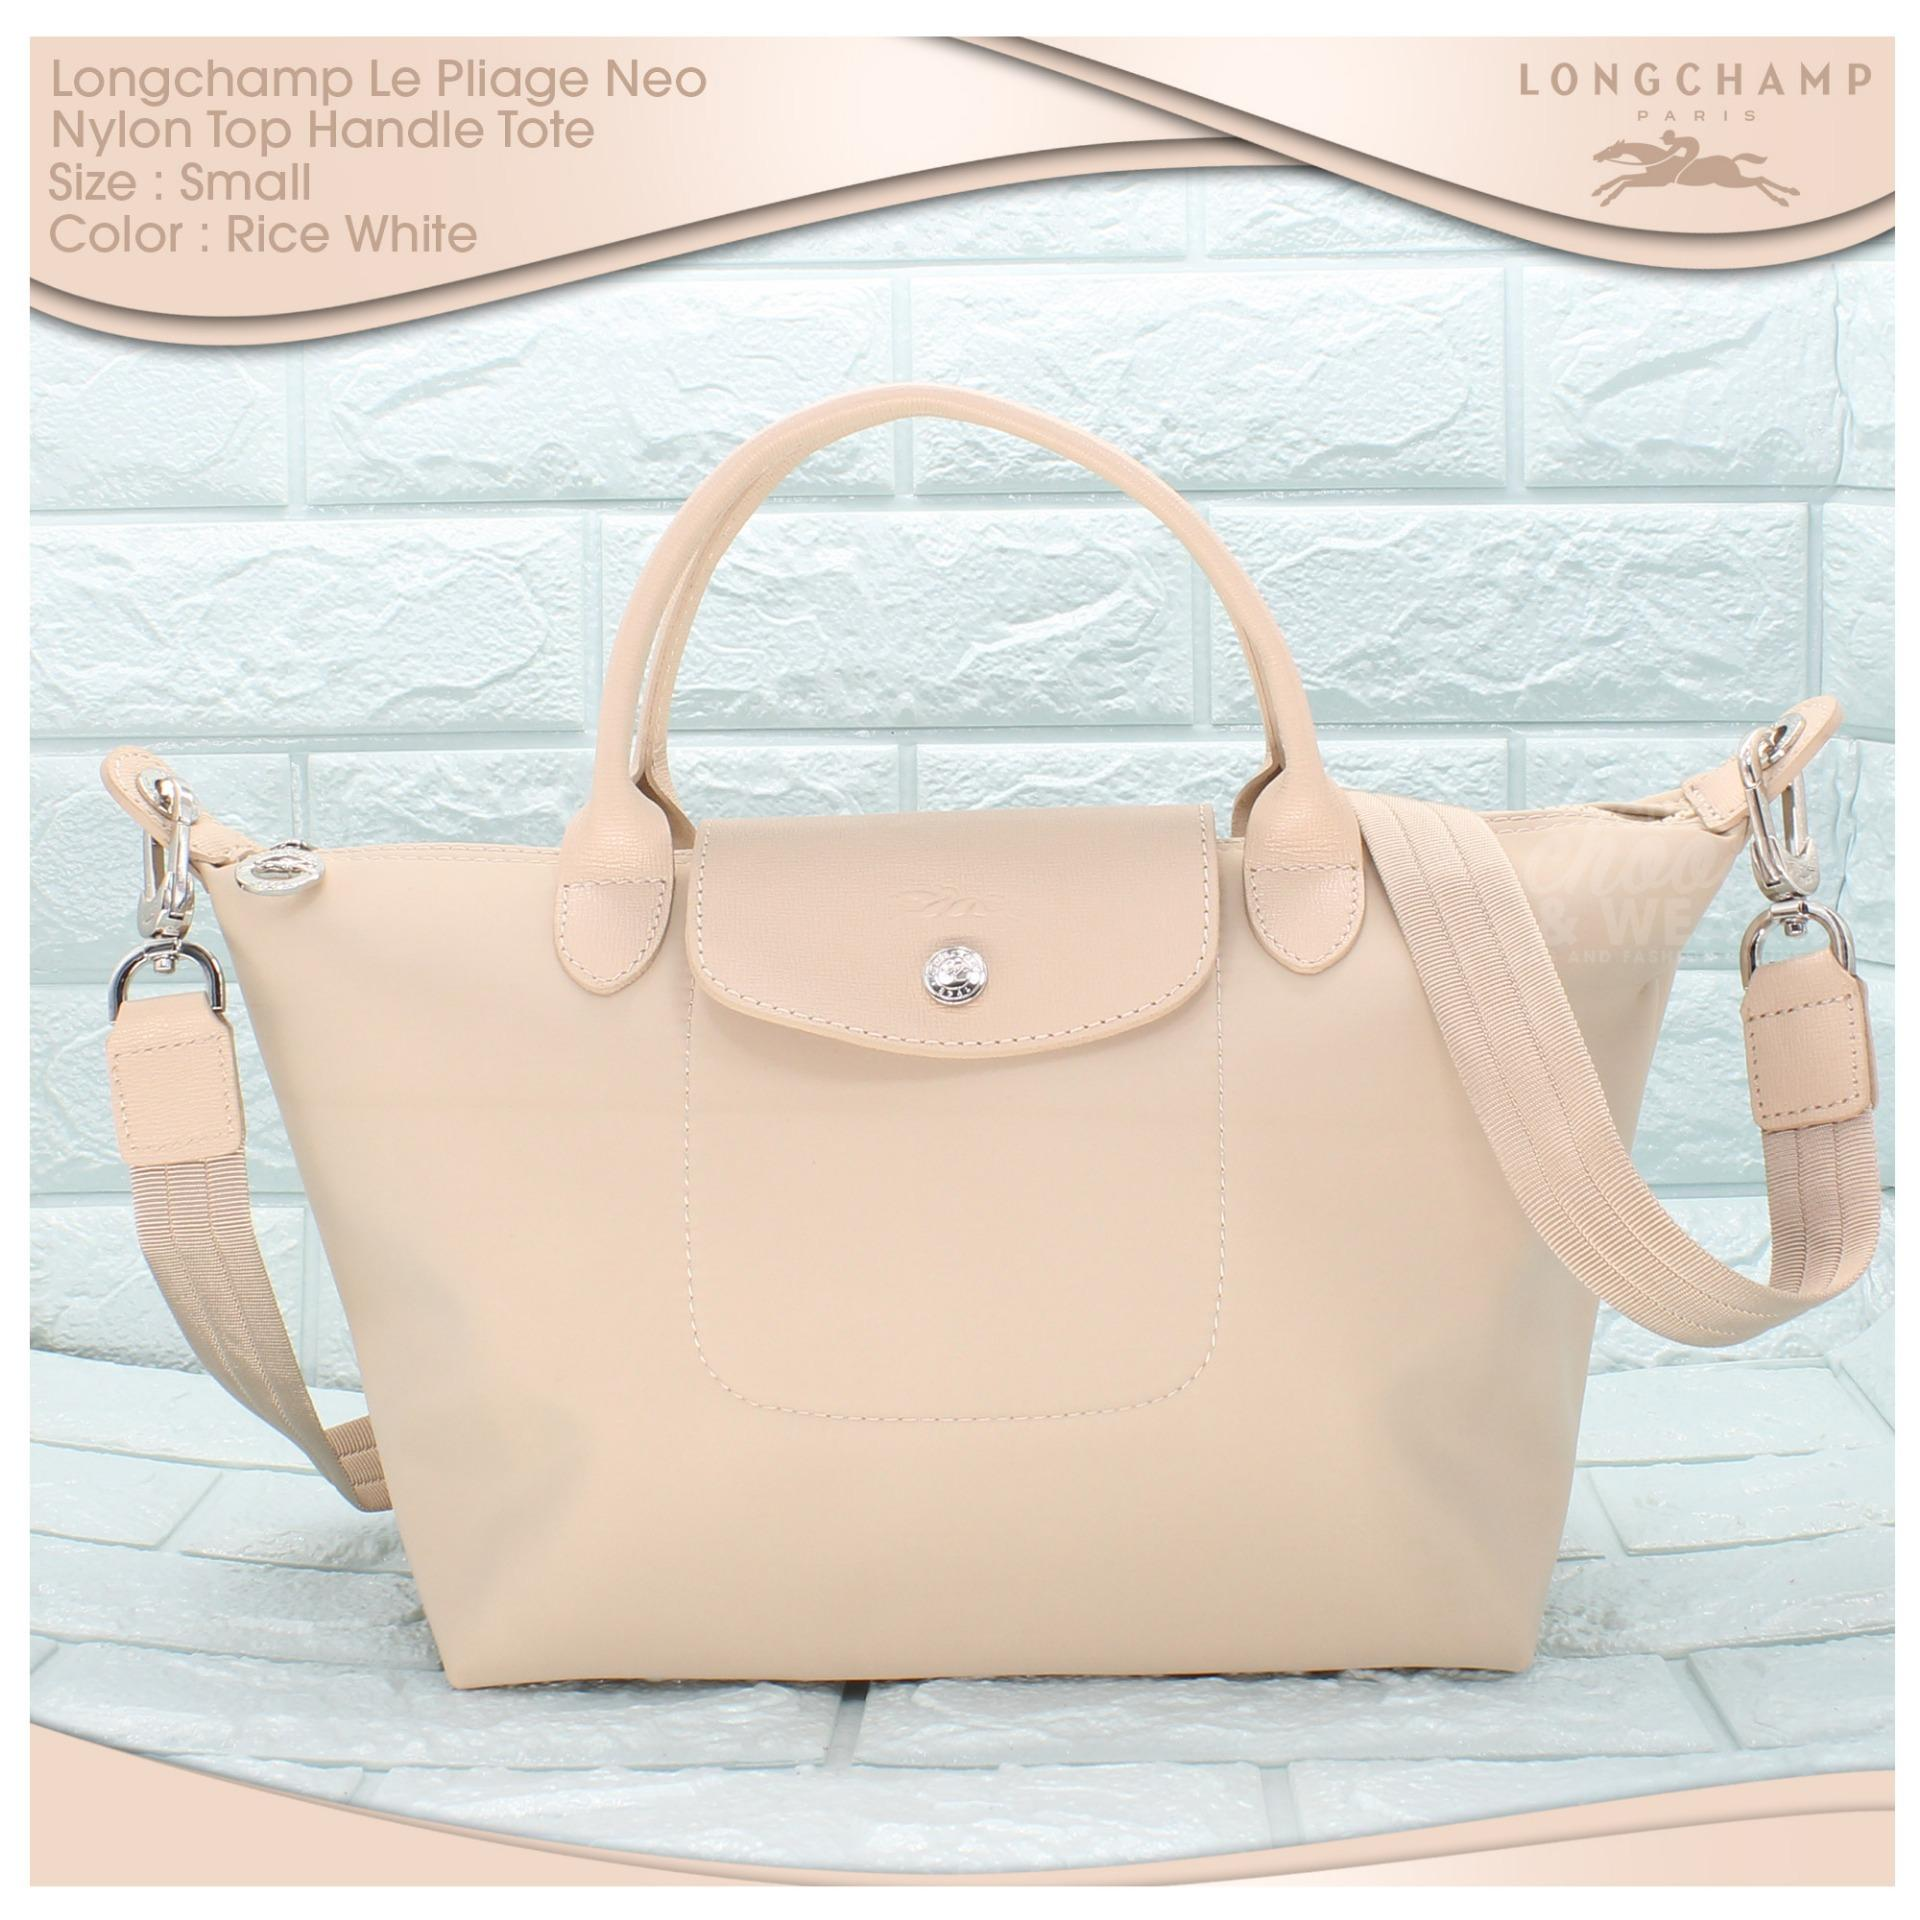 51ac81c91a63 Authentic Longchamp Made In France Le Pliage Neo Small Top Handle Tote -  Light GrayPHP1850. PHP 1.850